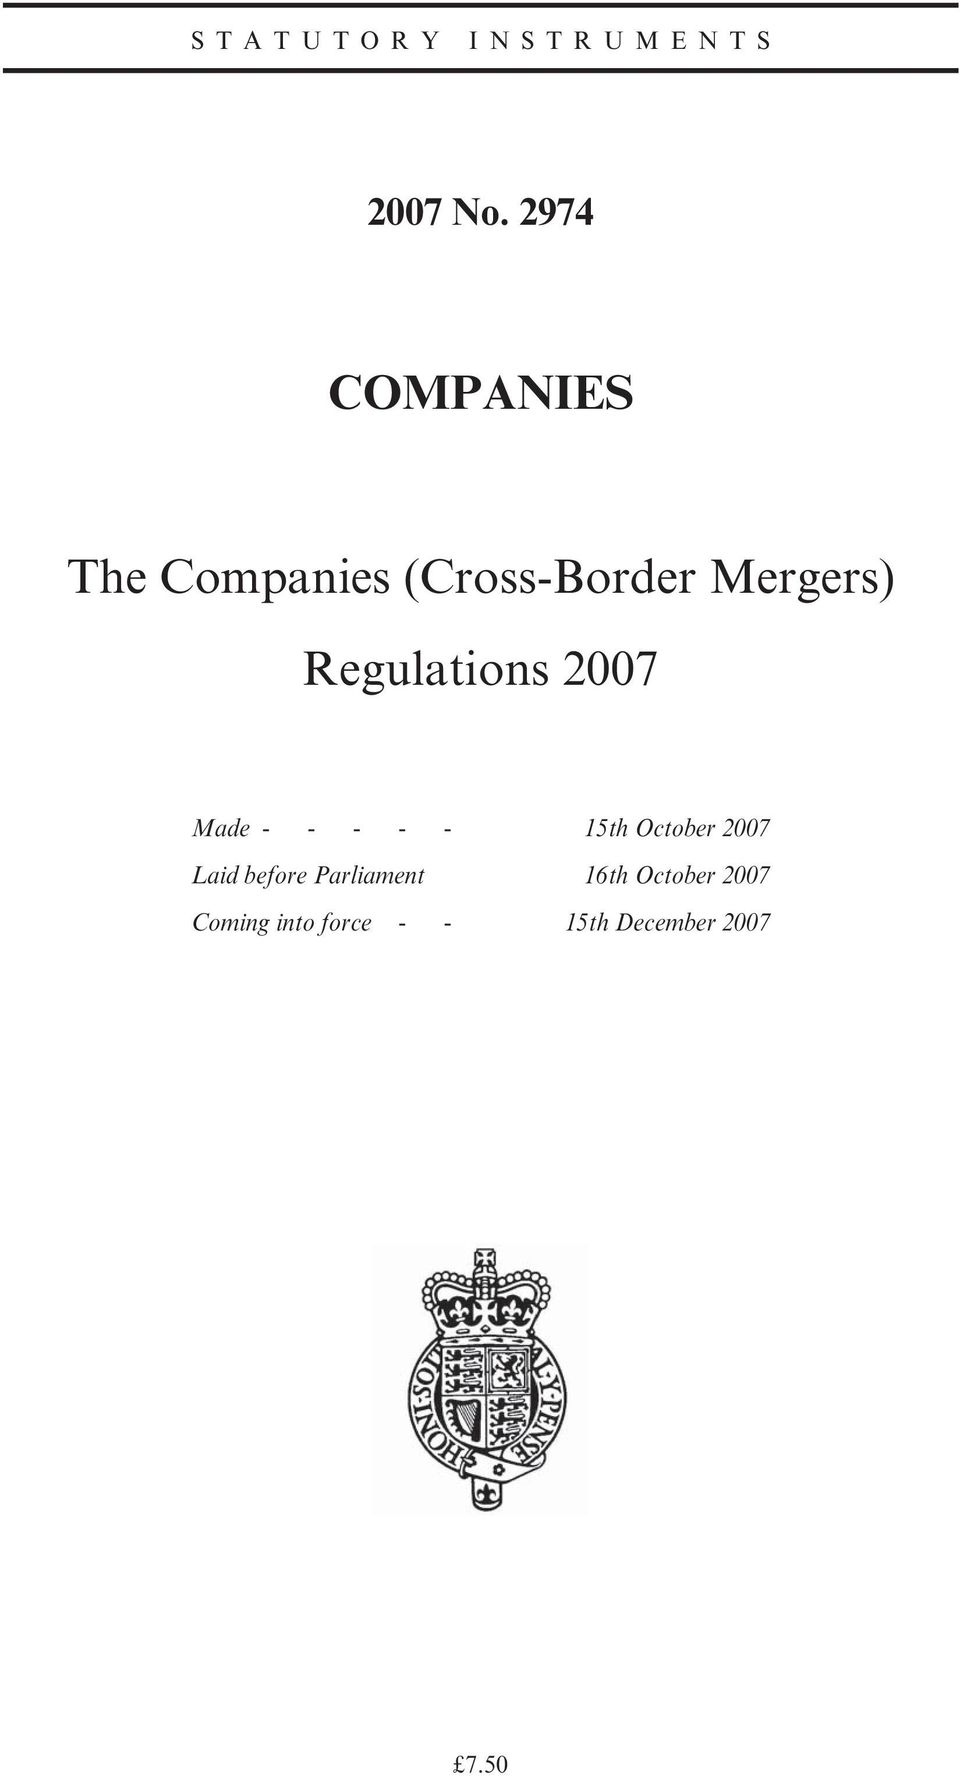 Regulations 2007 Made - - - - - 15th October 2007 Laid